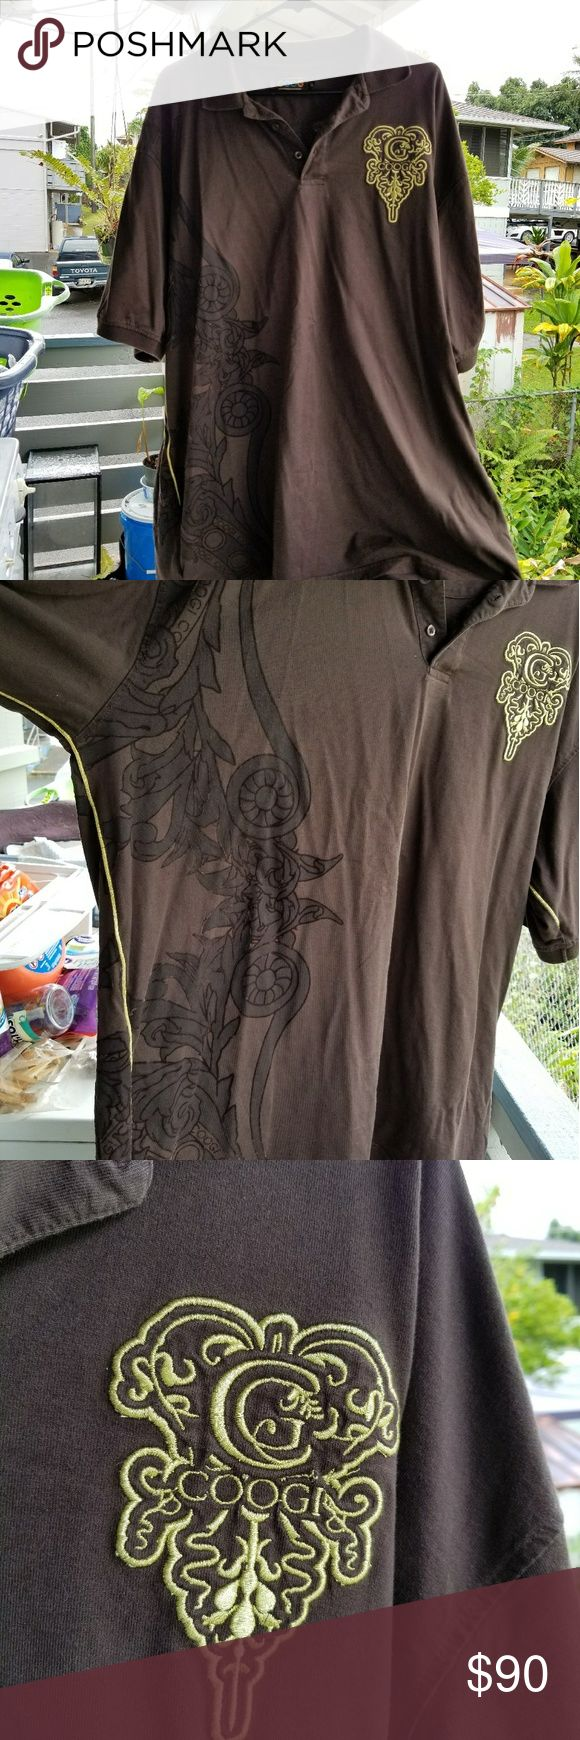 Coogi Mens Polo Shirt Authentic Coogi chocolate brown polo shirt with gold embroidery and velvet type detail. In good condition, no stains etc. Size XXXL. COOGI Shirts